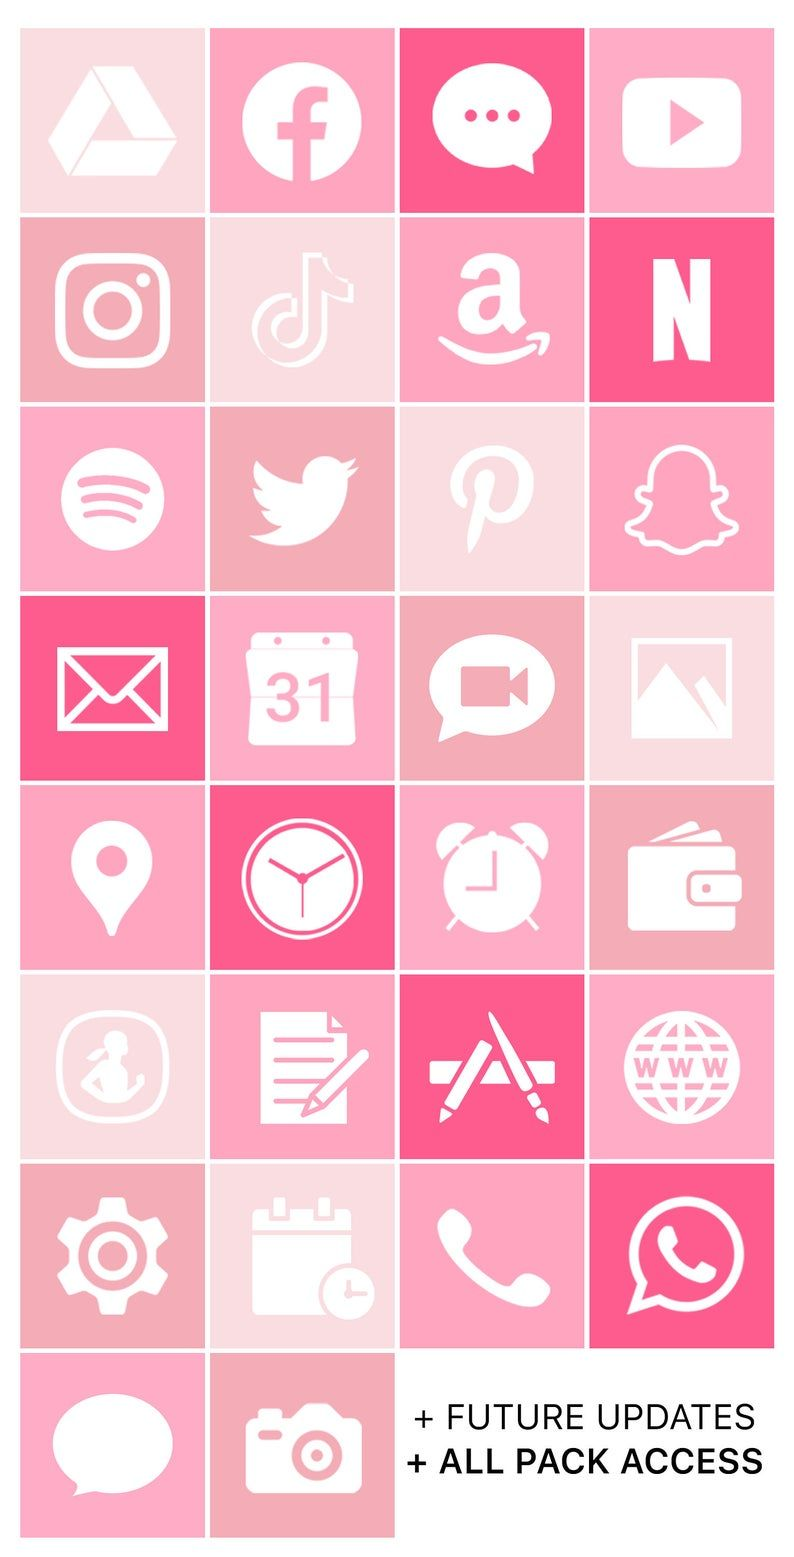 Ios Icon Lifetime All Access Pack Pastel Pink Iphone Ios14 Etsy In 2020 Ios Icon Iphone App Design Pink Iphone